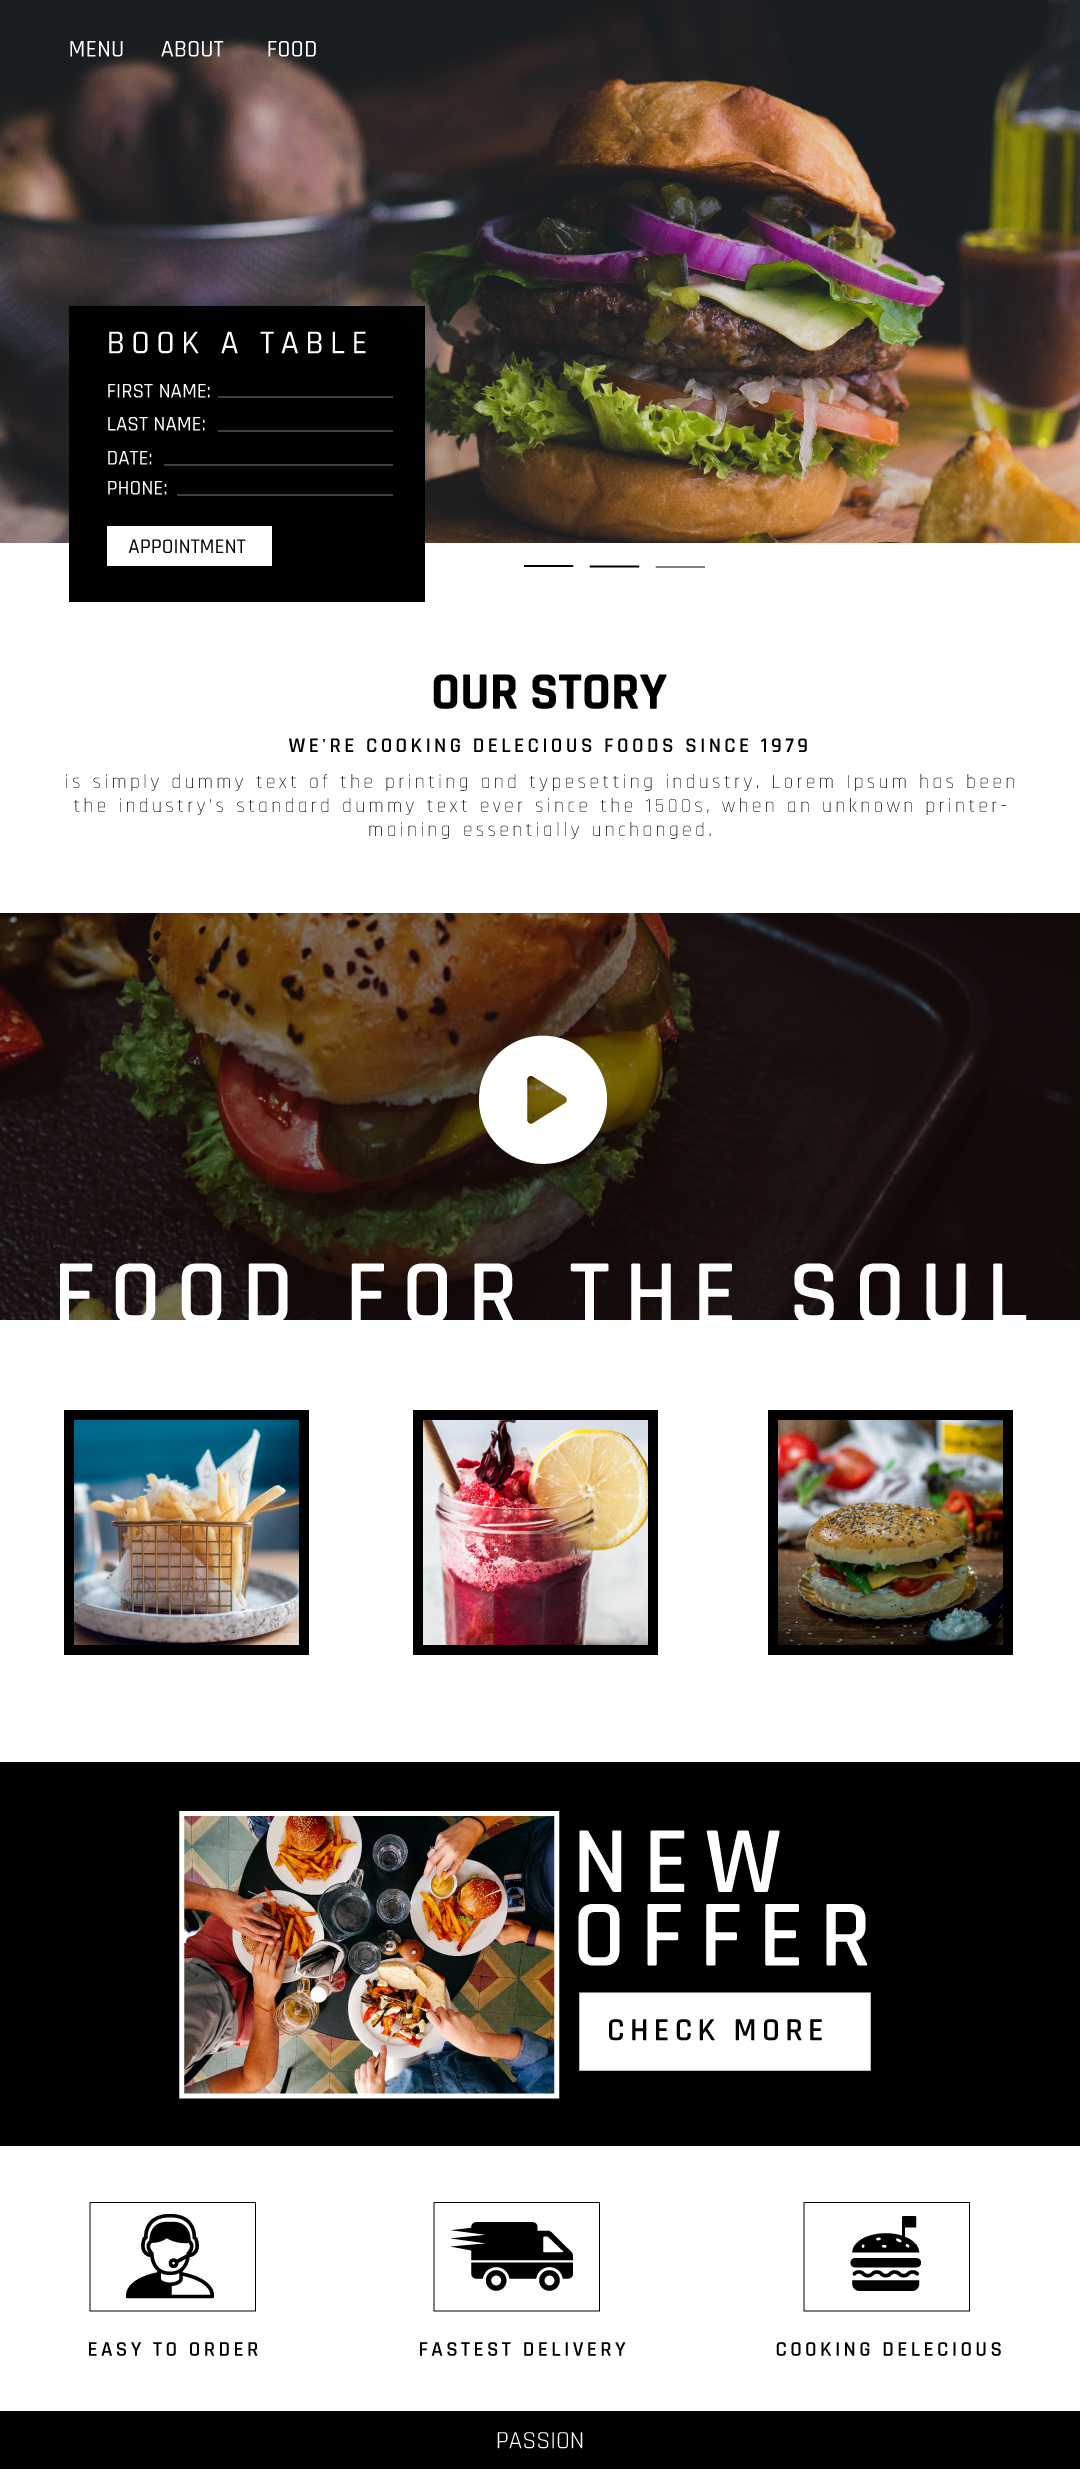 Design a website template for a restaurant